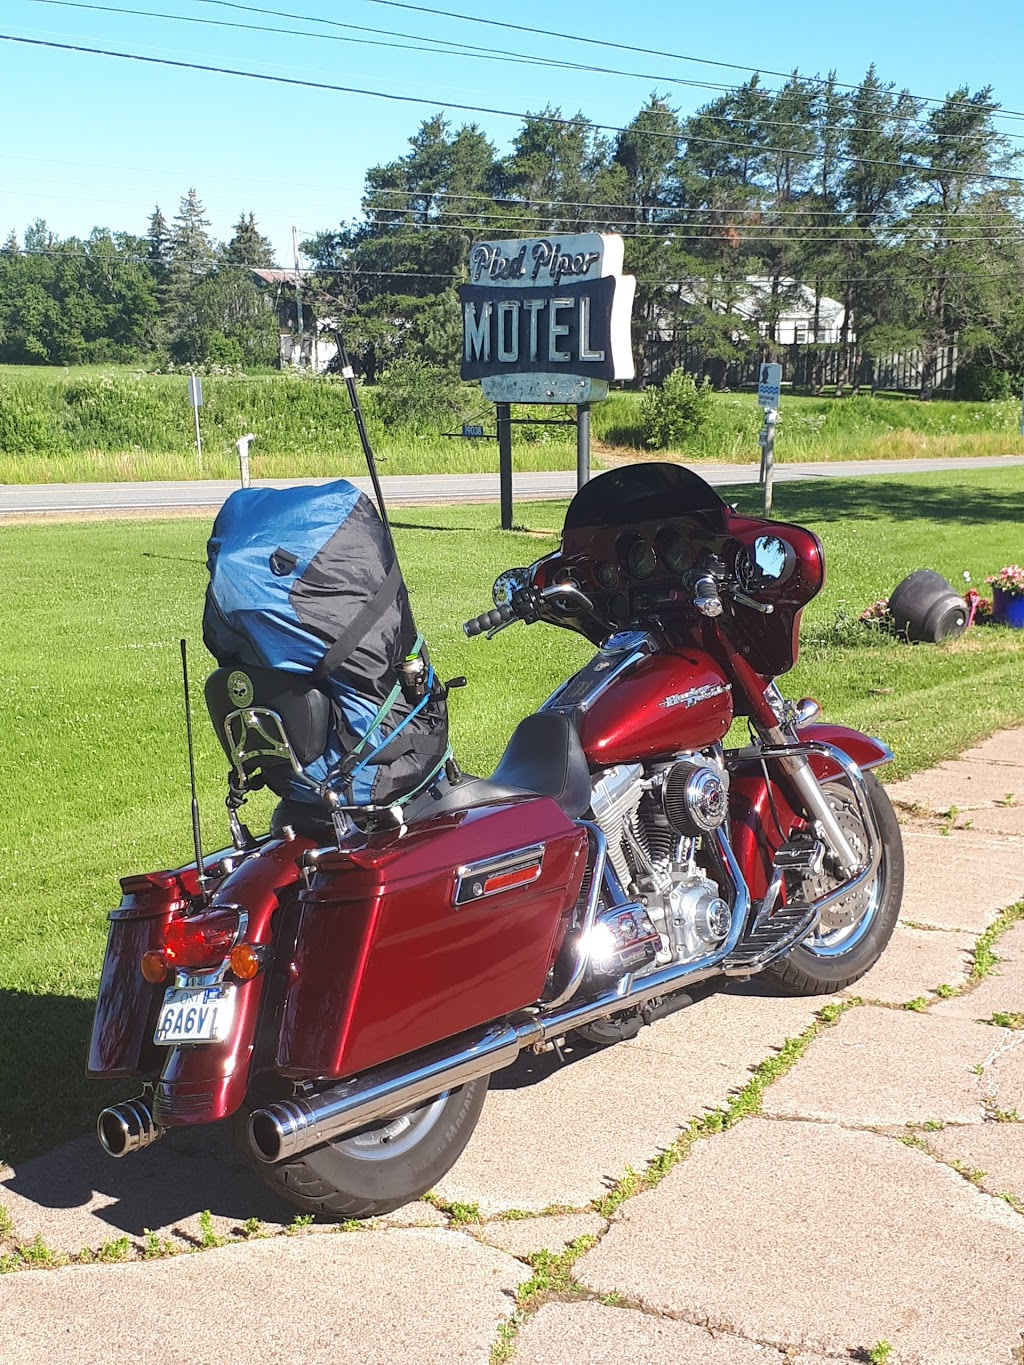 Pied Piper Motel | lodging | 19038 Nova Scotia Trunk 2, Amherst, NS B4H 3Y4, Canada | 9026670330 OR +1 902-667-0330